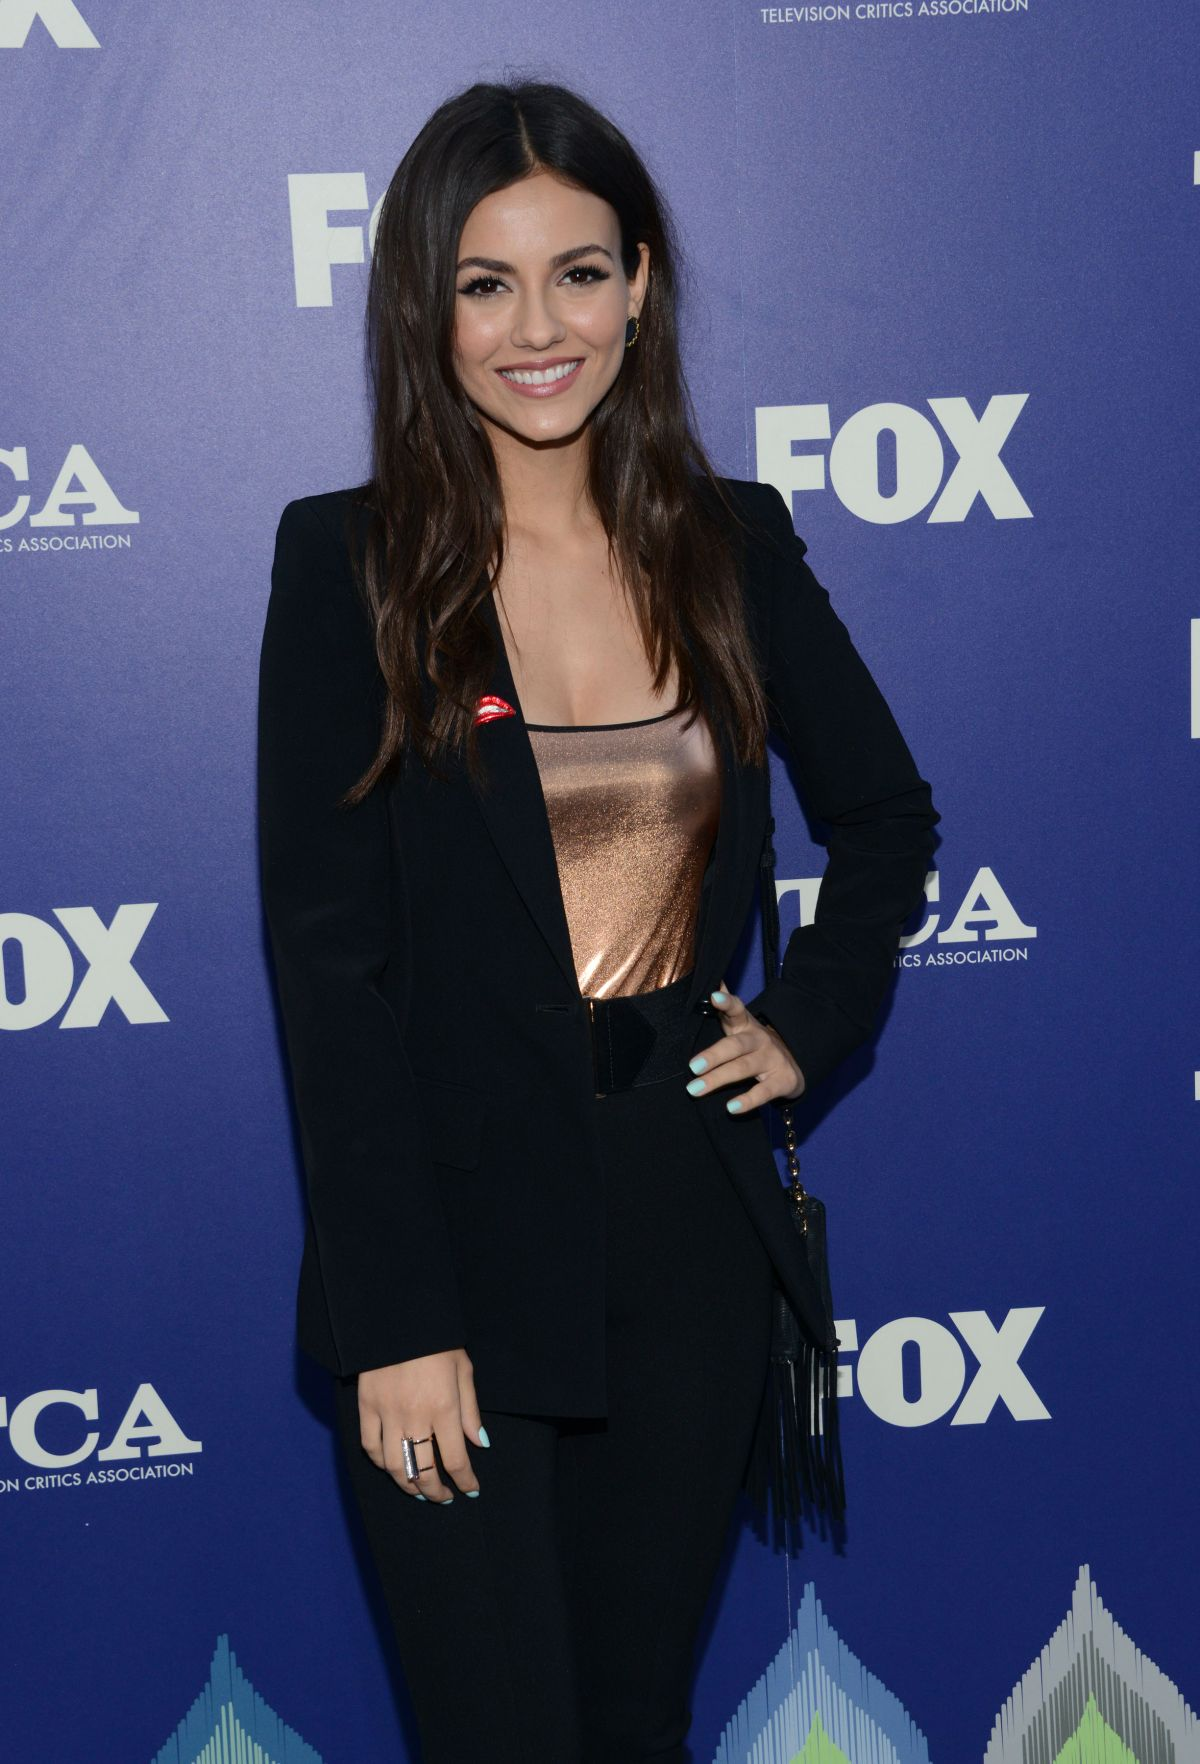 VICTORIA JUSTICE at Fox Summer TCA All-star Party in West Hollywood 08/08/2016